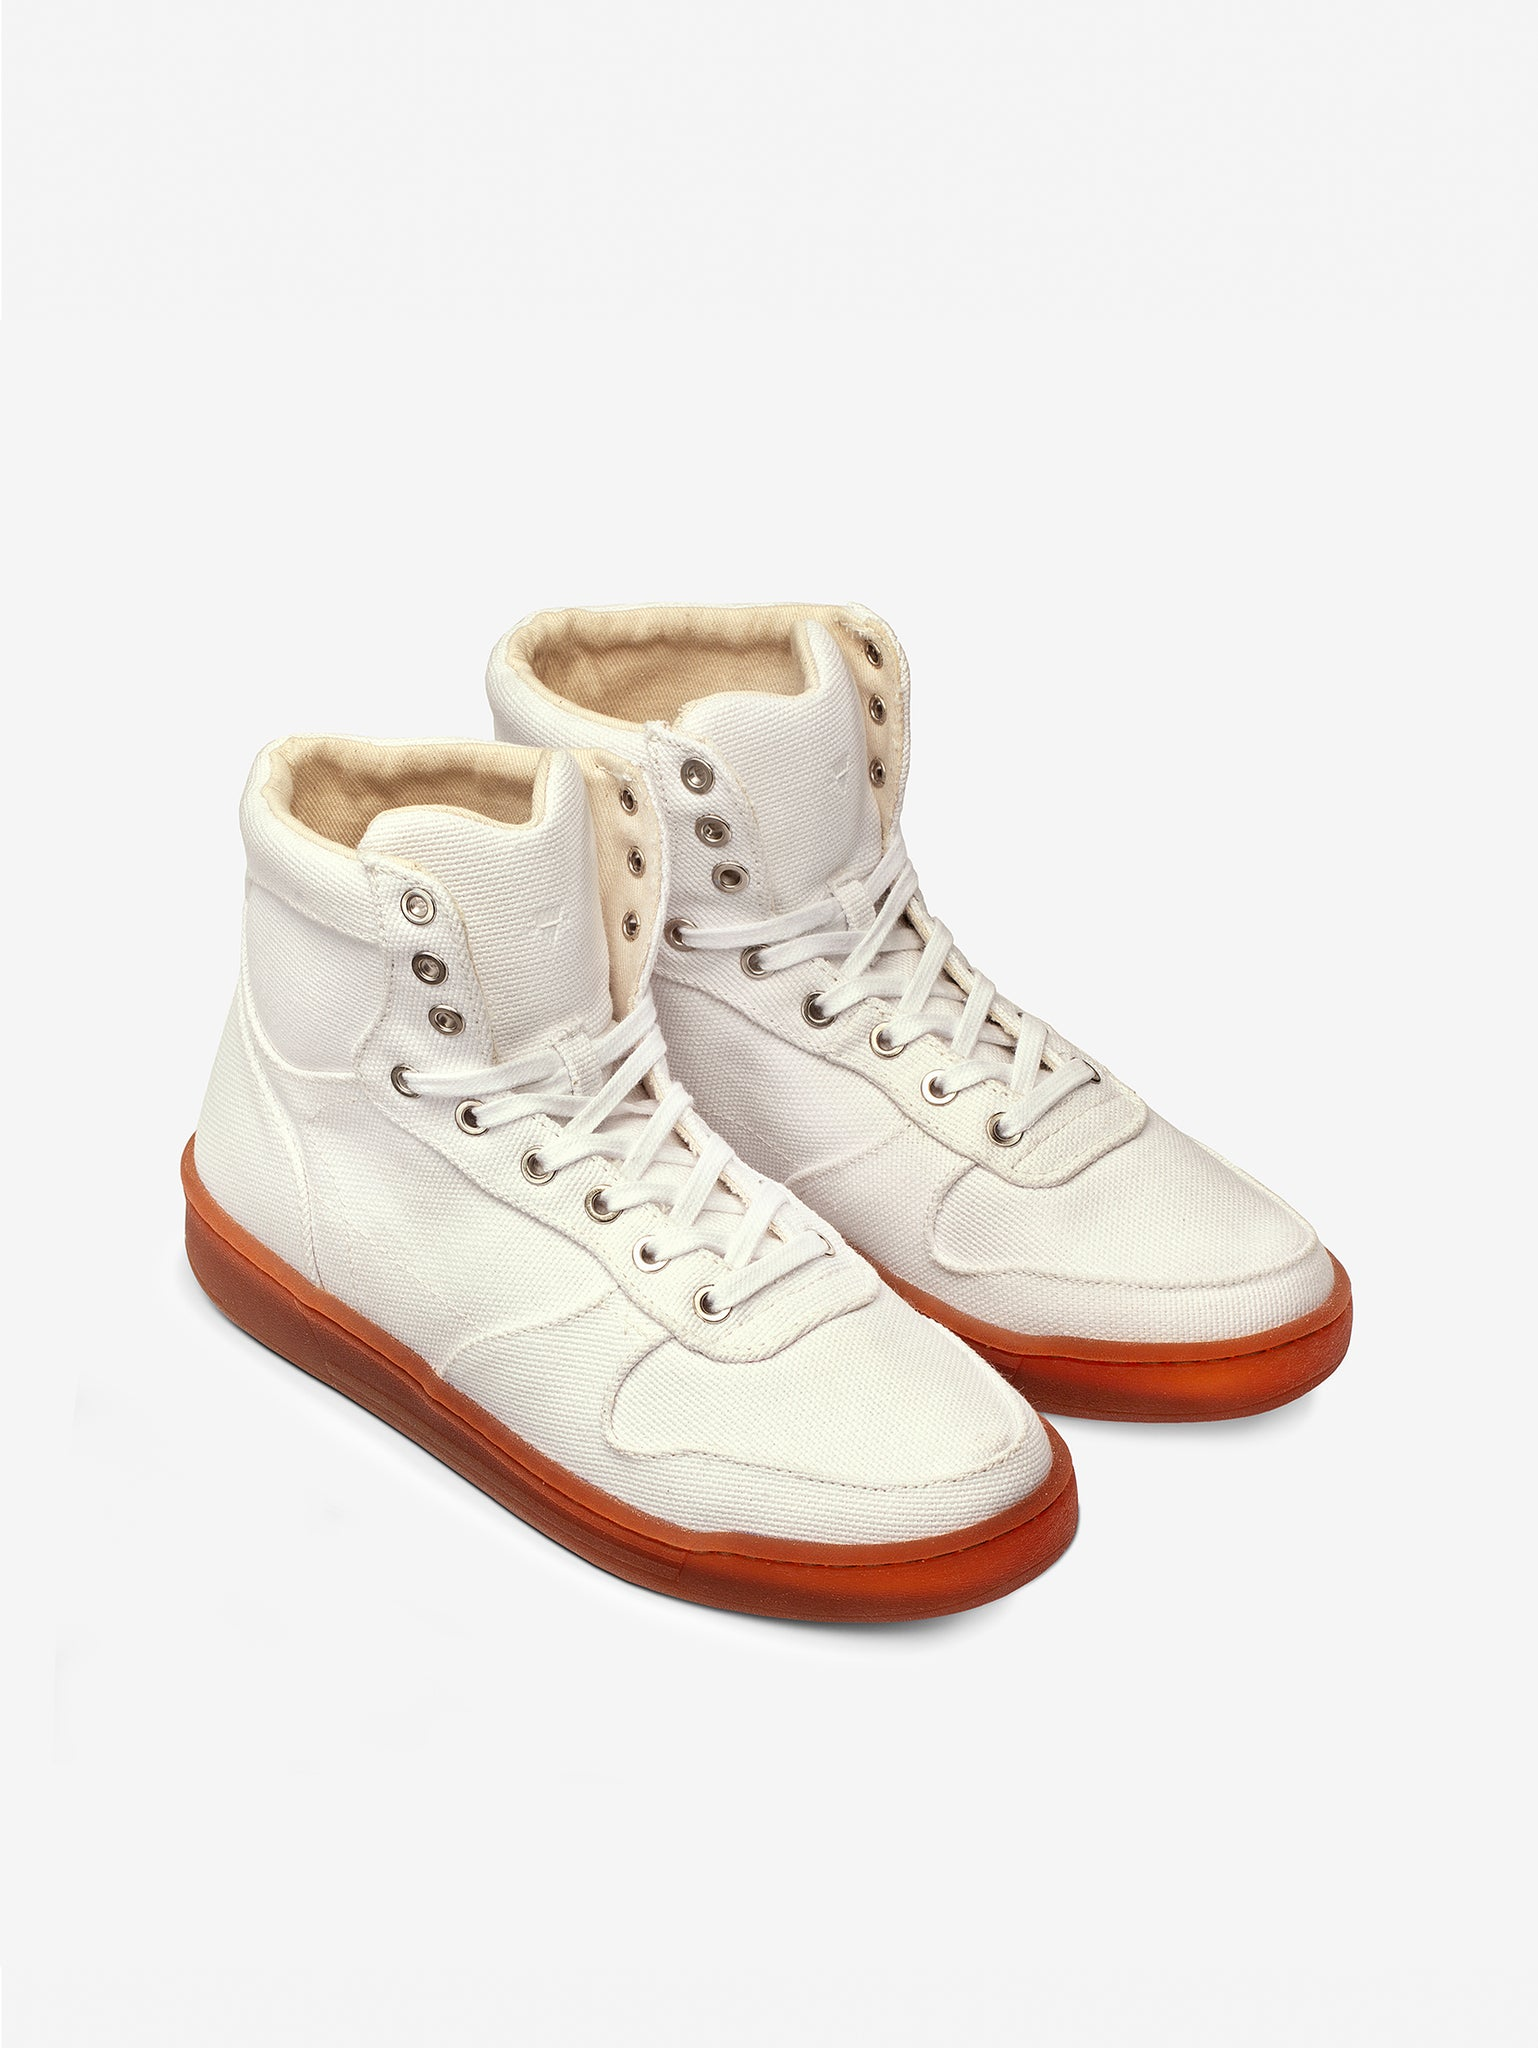 White plastic-free Vegan high top organic canvas pair